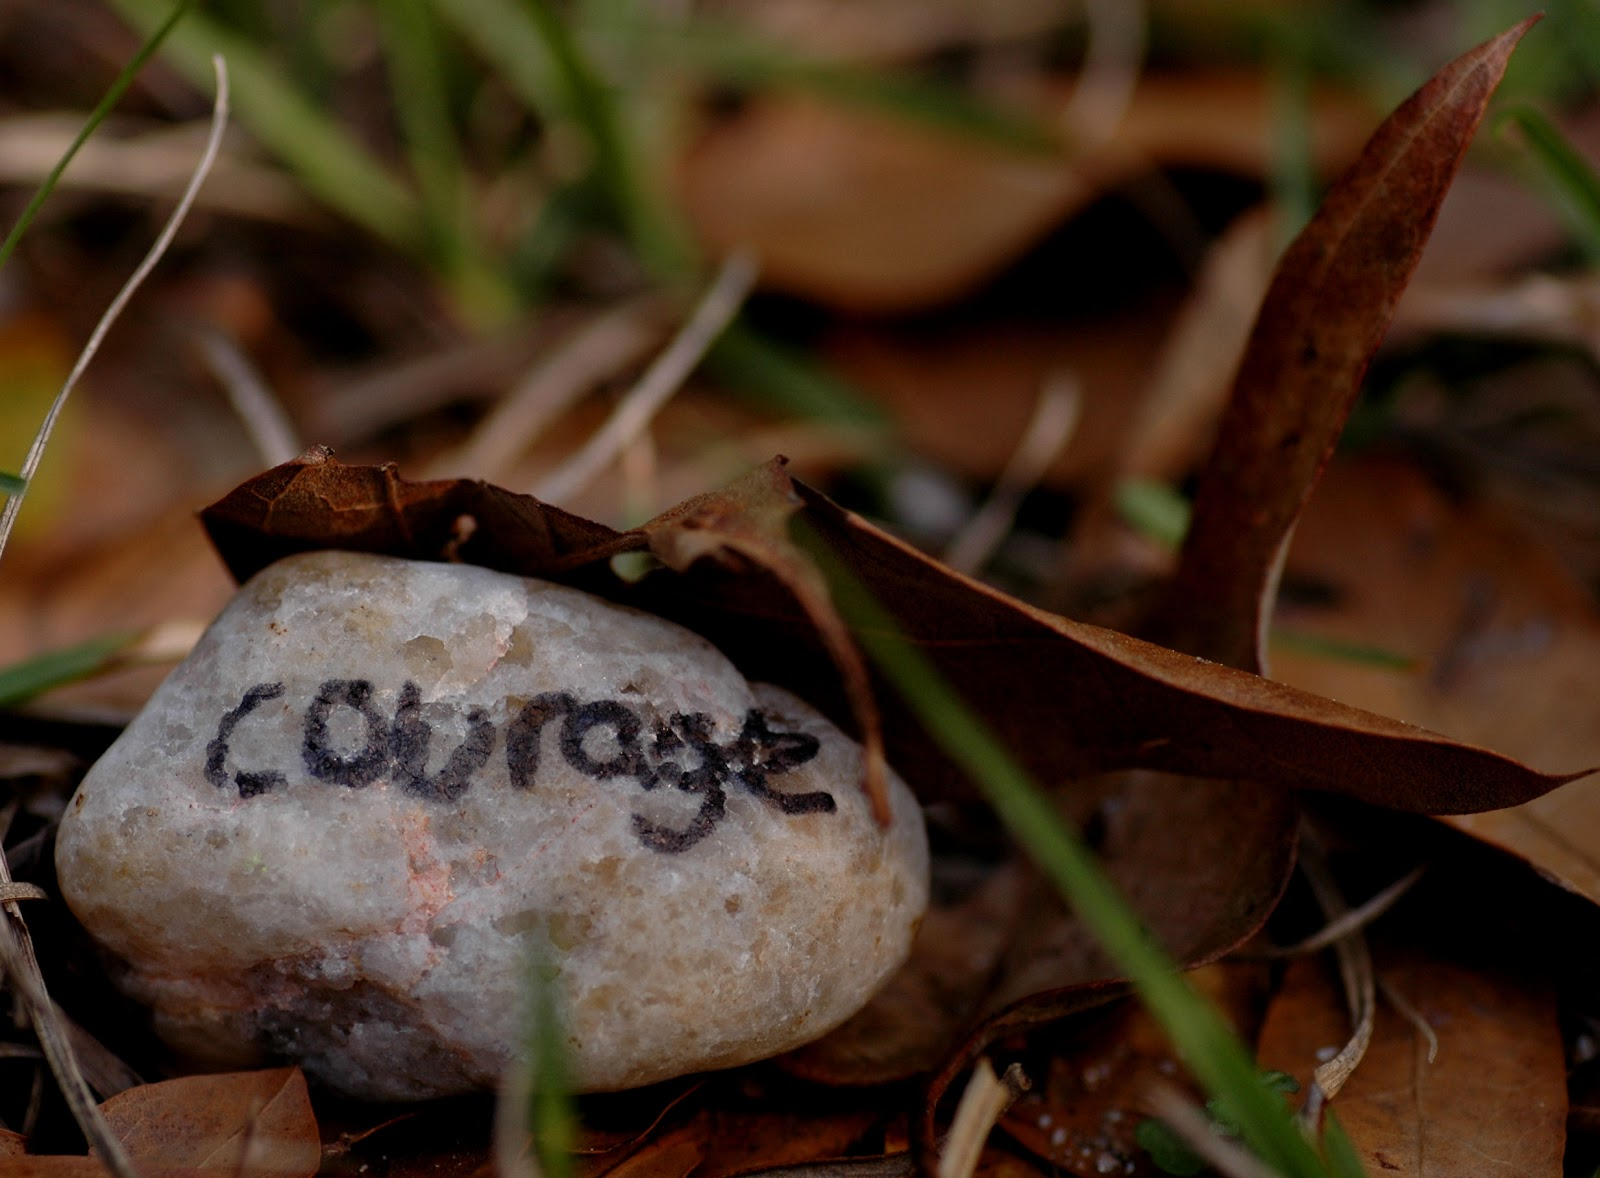 courage_jridgewayphotography.jpg